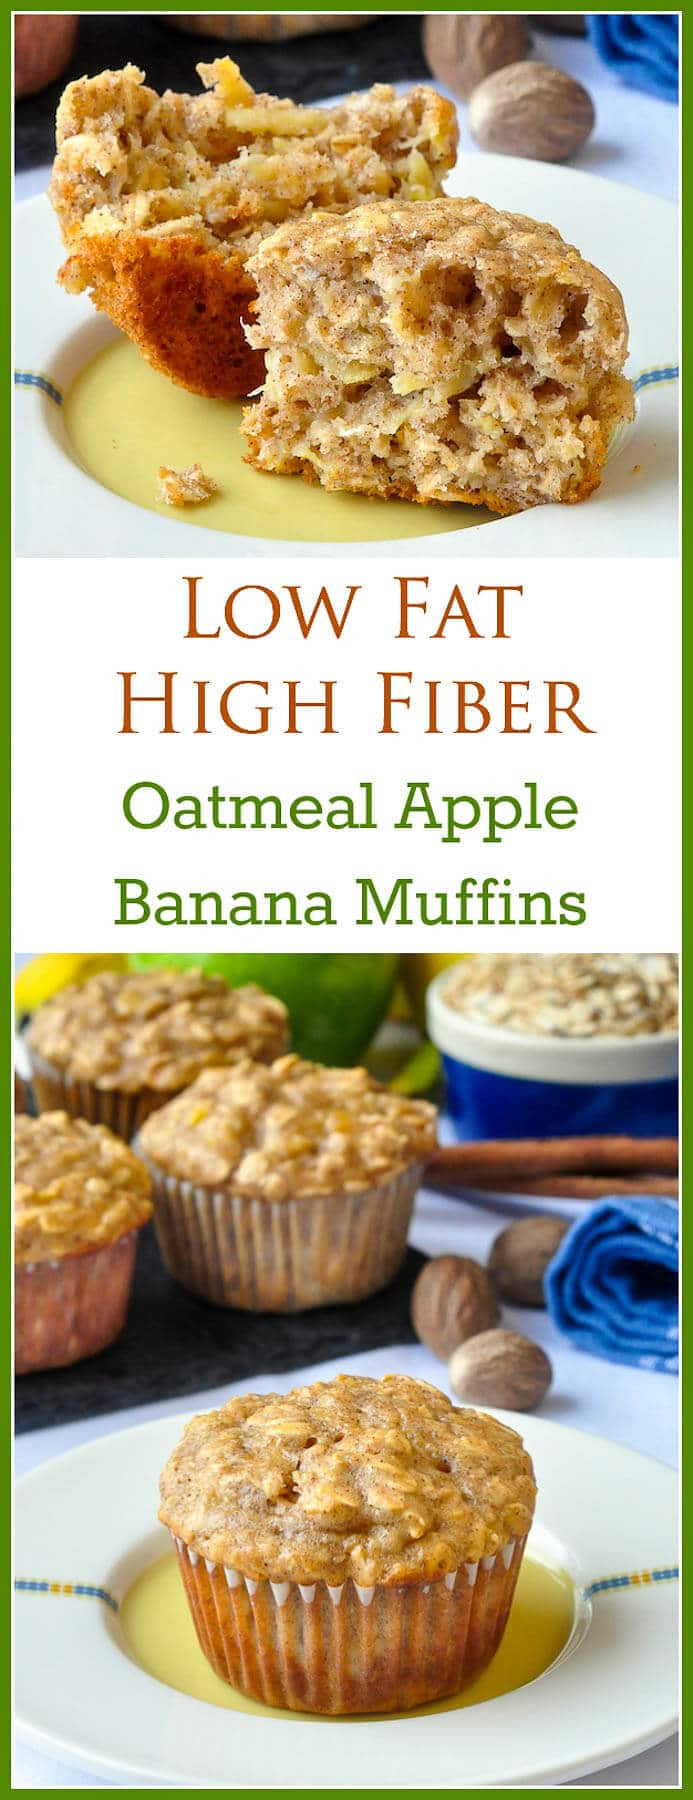 Low Fat Low Cholesterol Recipes  Oatmeal Apple Banana Low Fat Muffins Easy delicious